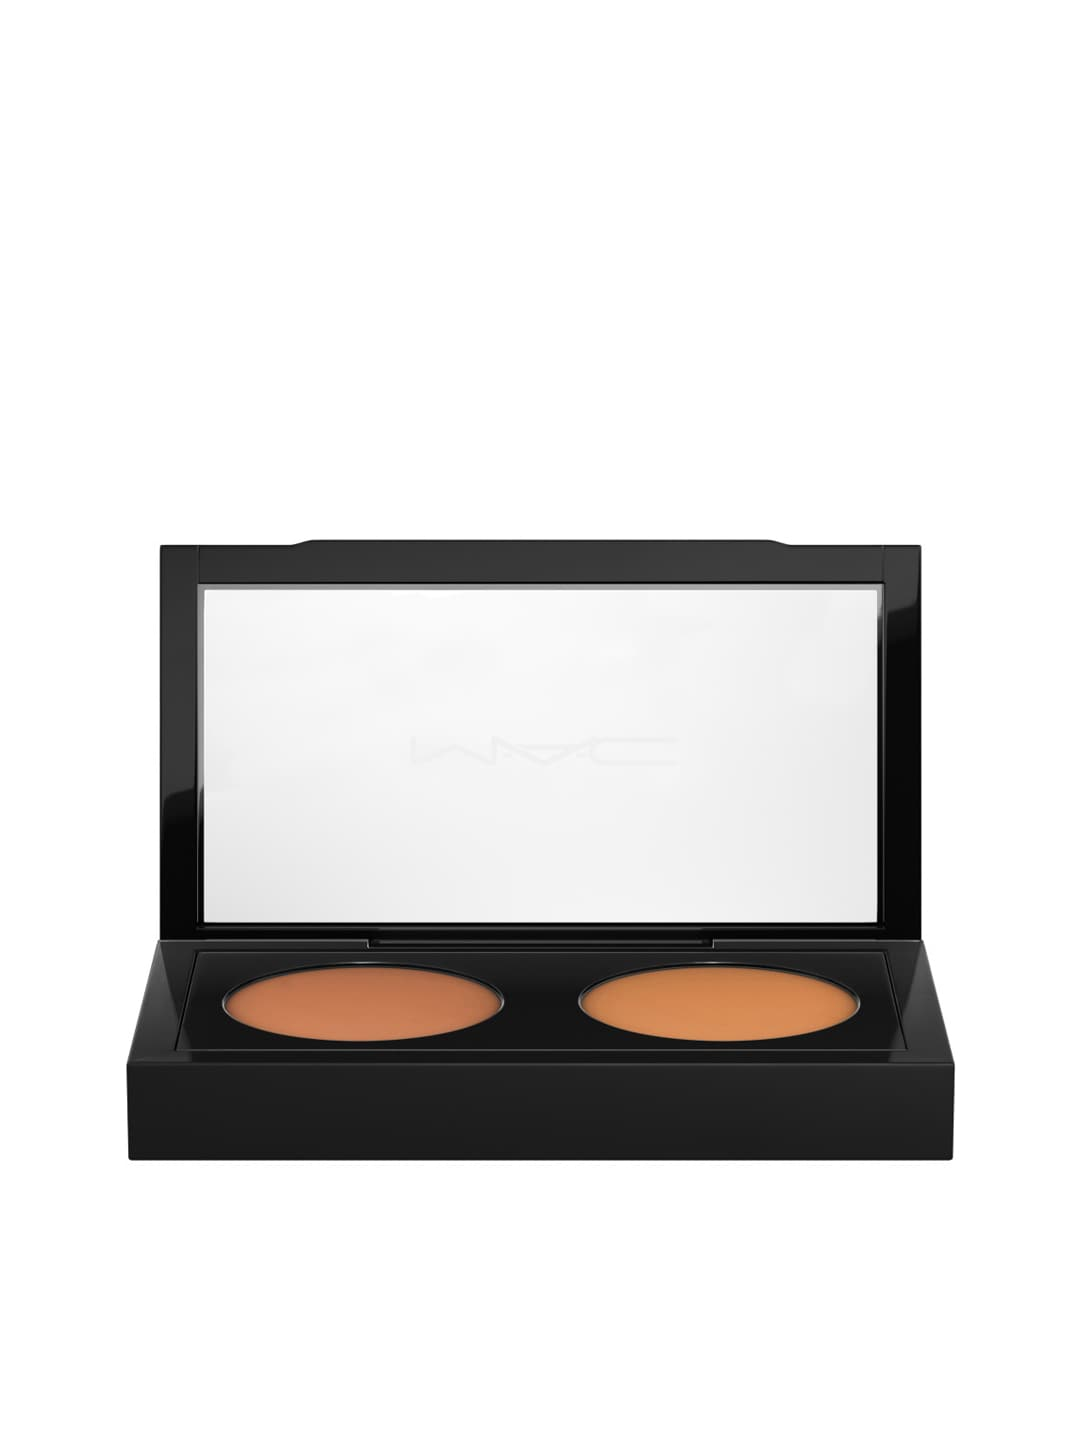 M.A.C NW45 & NC50 Studio Finish Concealer Duo image